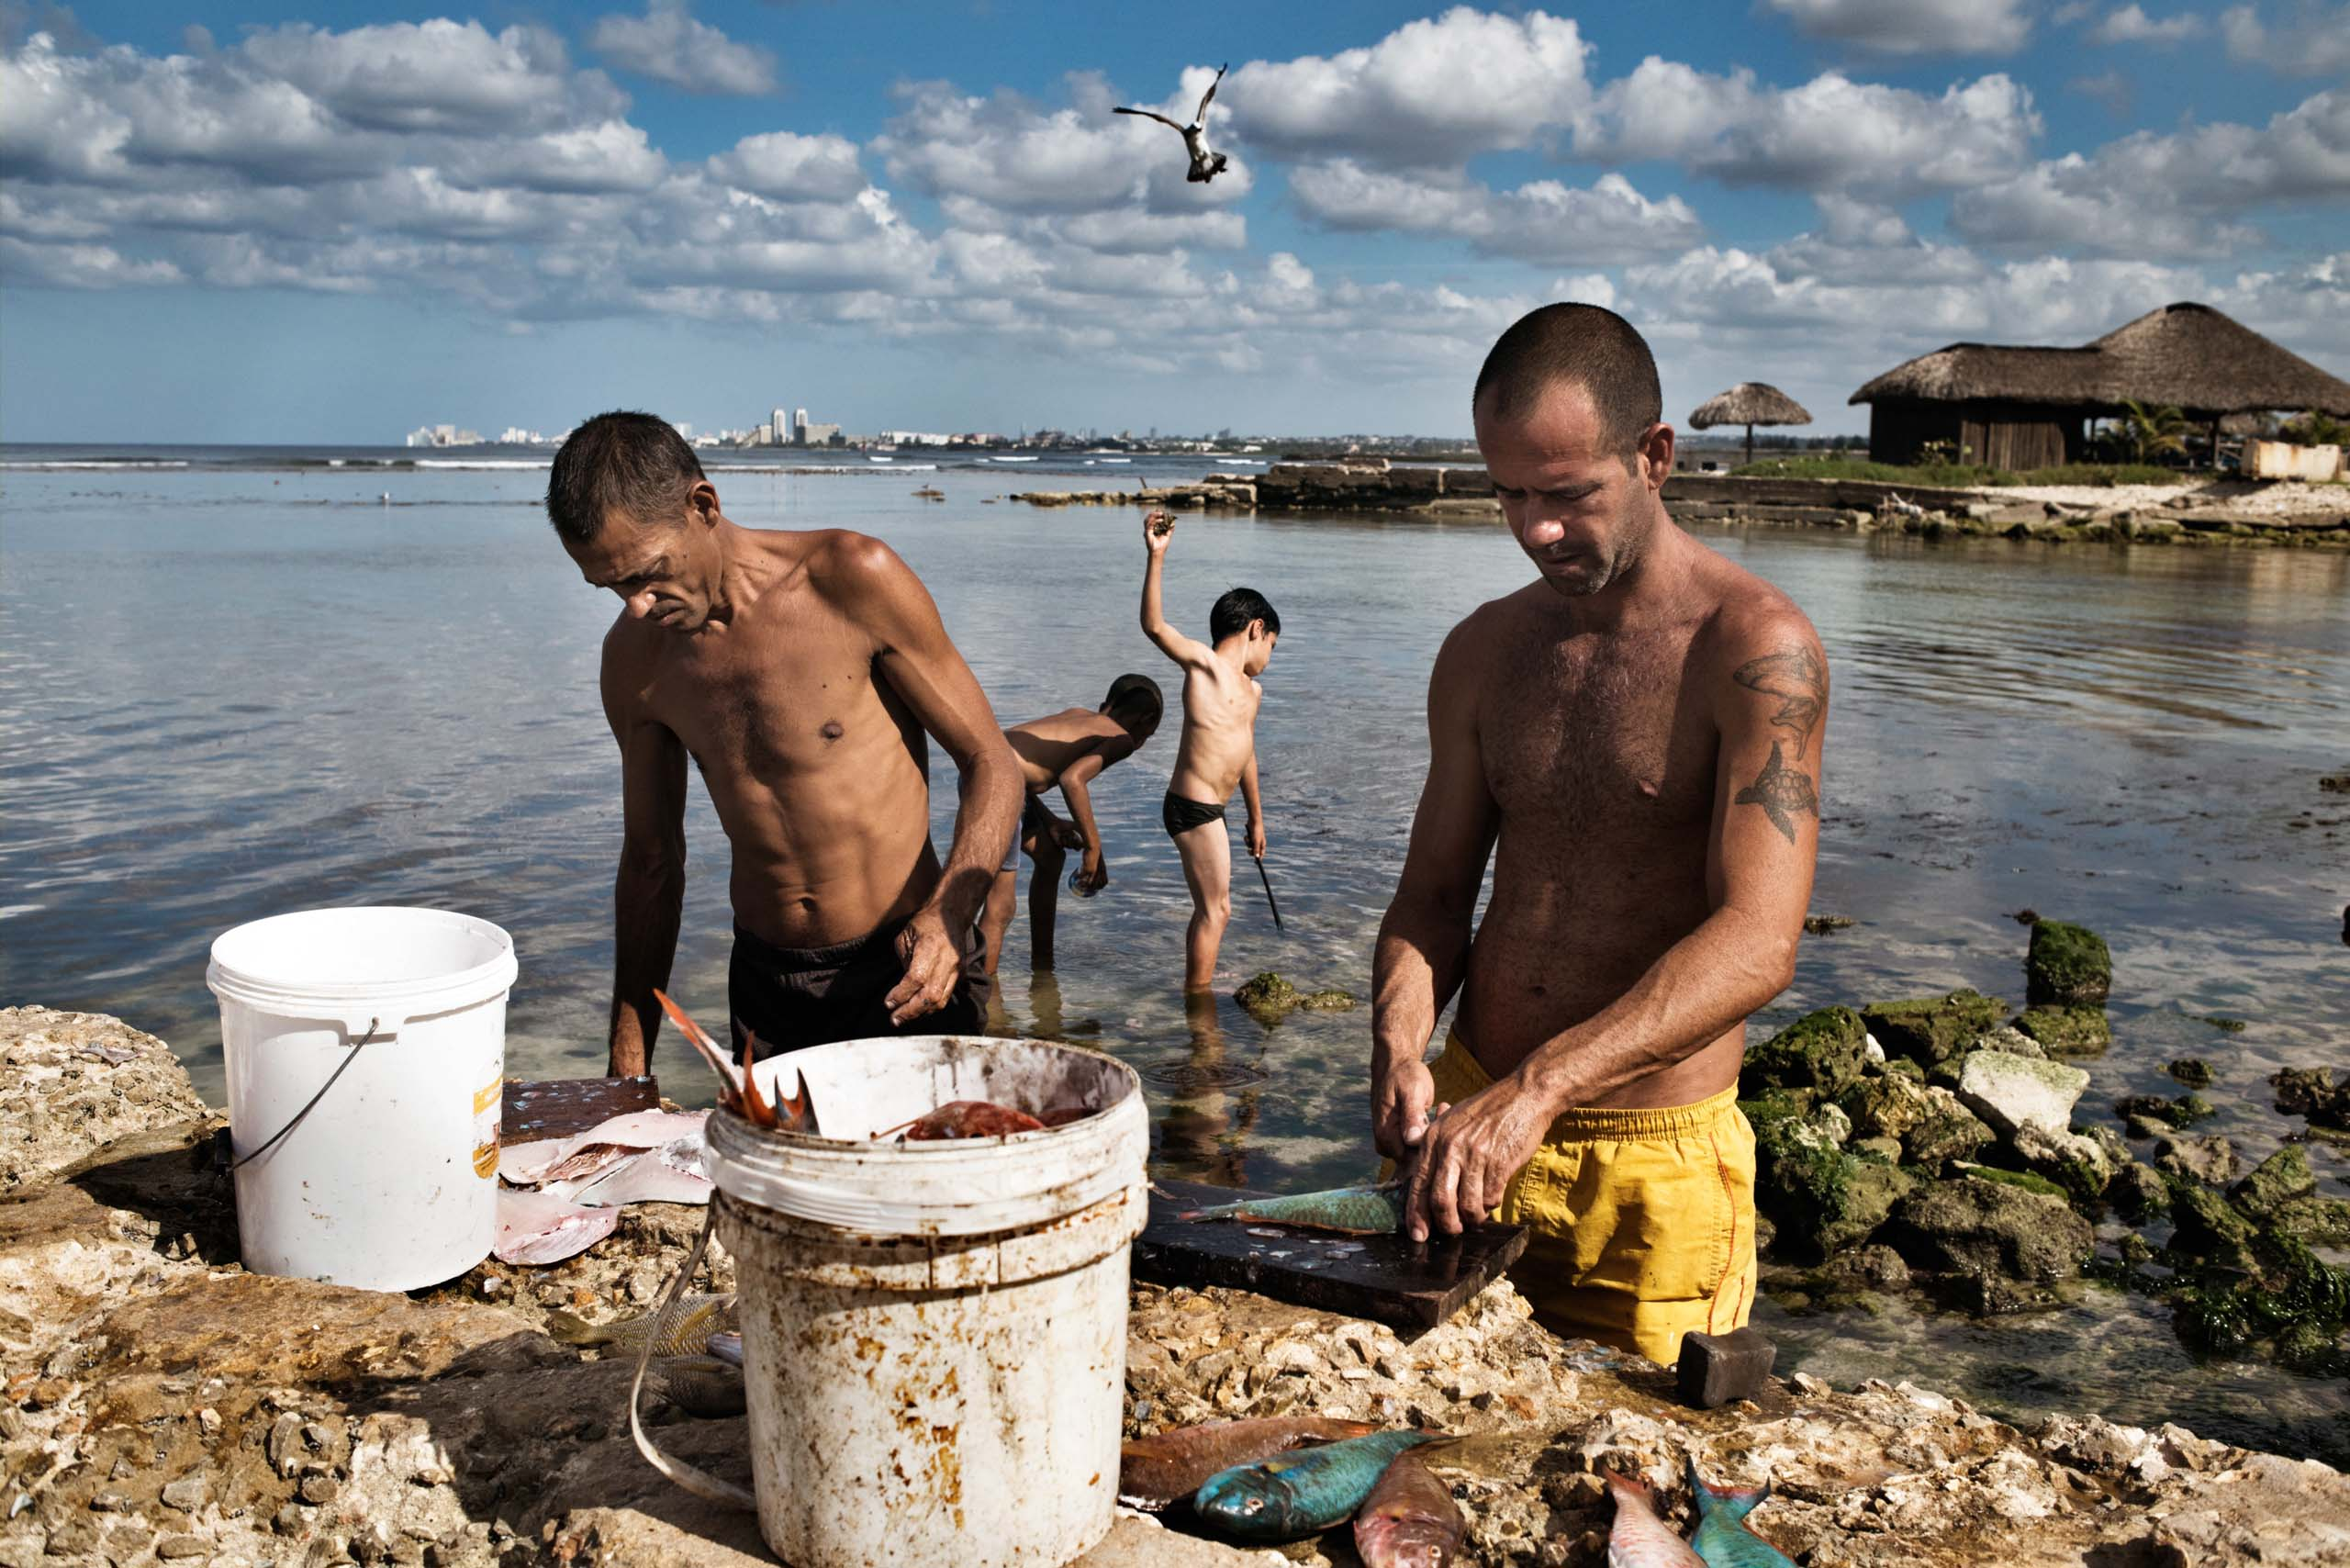 January 2015. Men clean fish, while children play by the shore, in the Jaimanitas neighborhood of Havana.